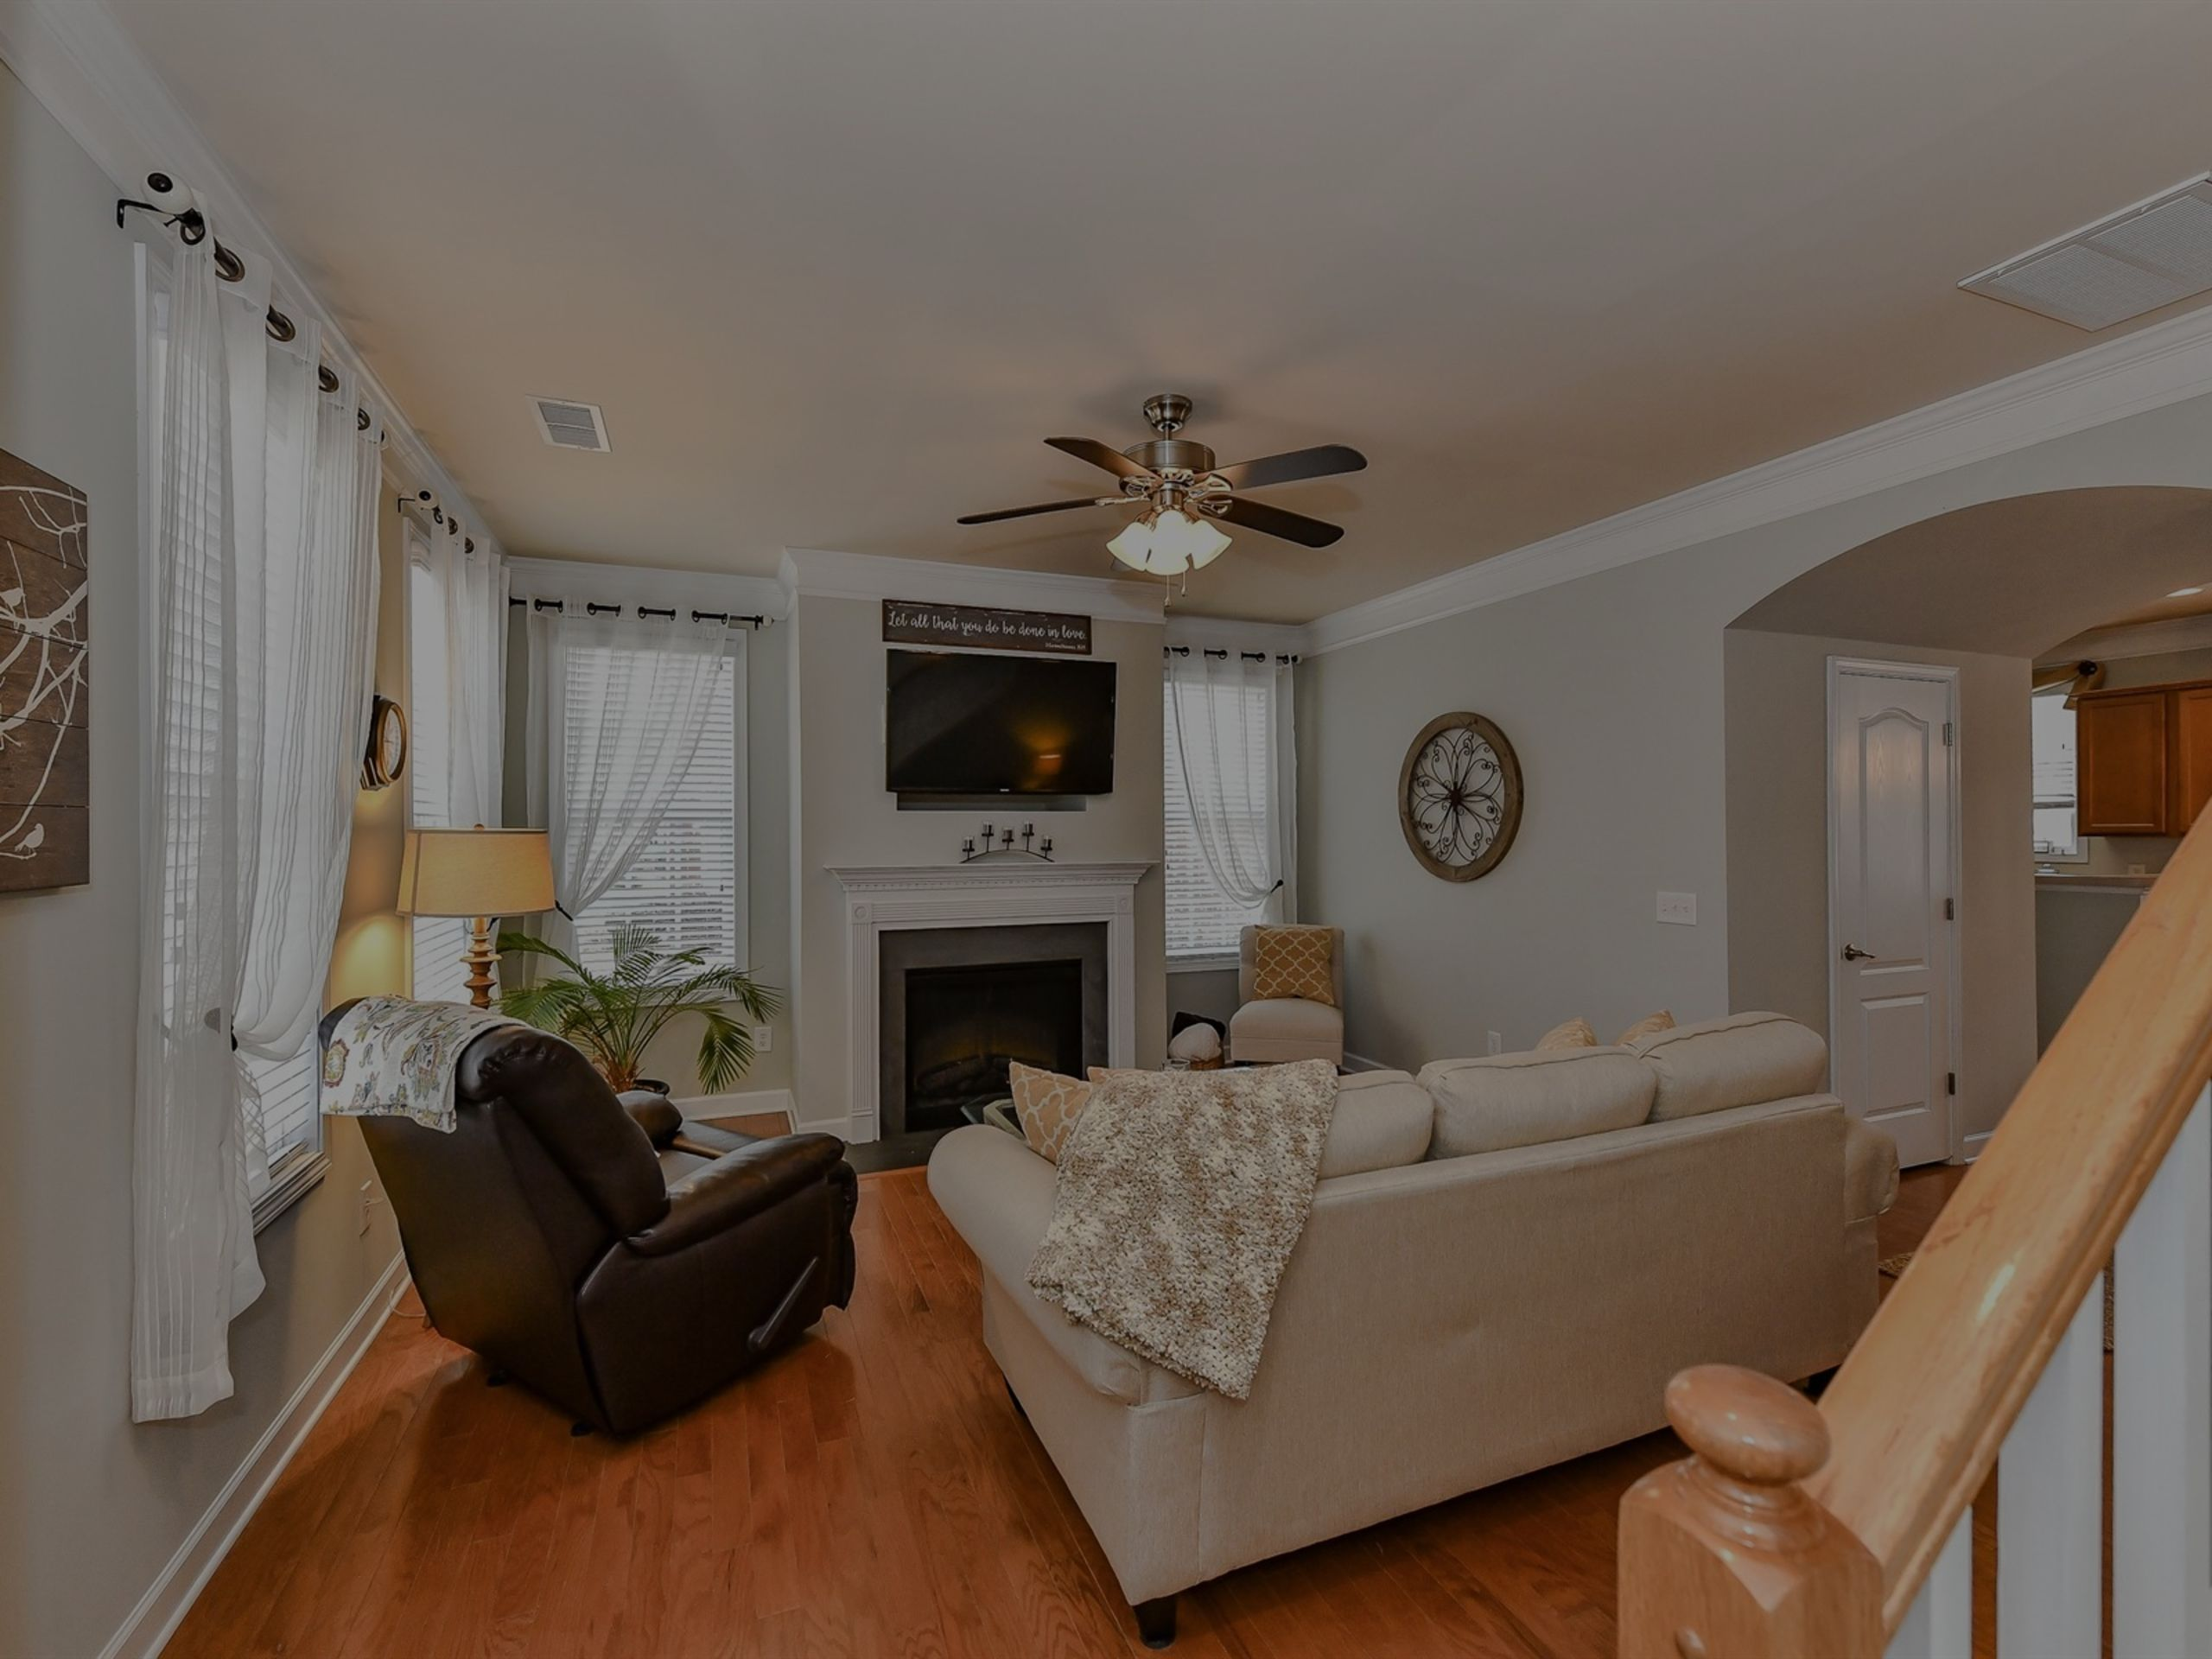 16960 Summers Walk Blvd, Davidson, NC 28036 Townhome For Sale